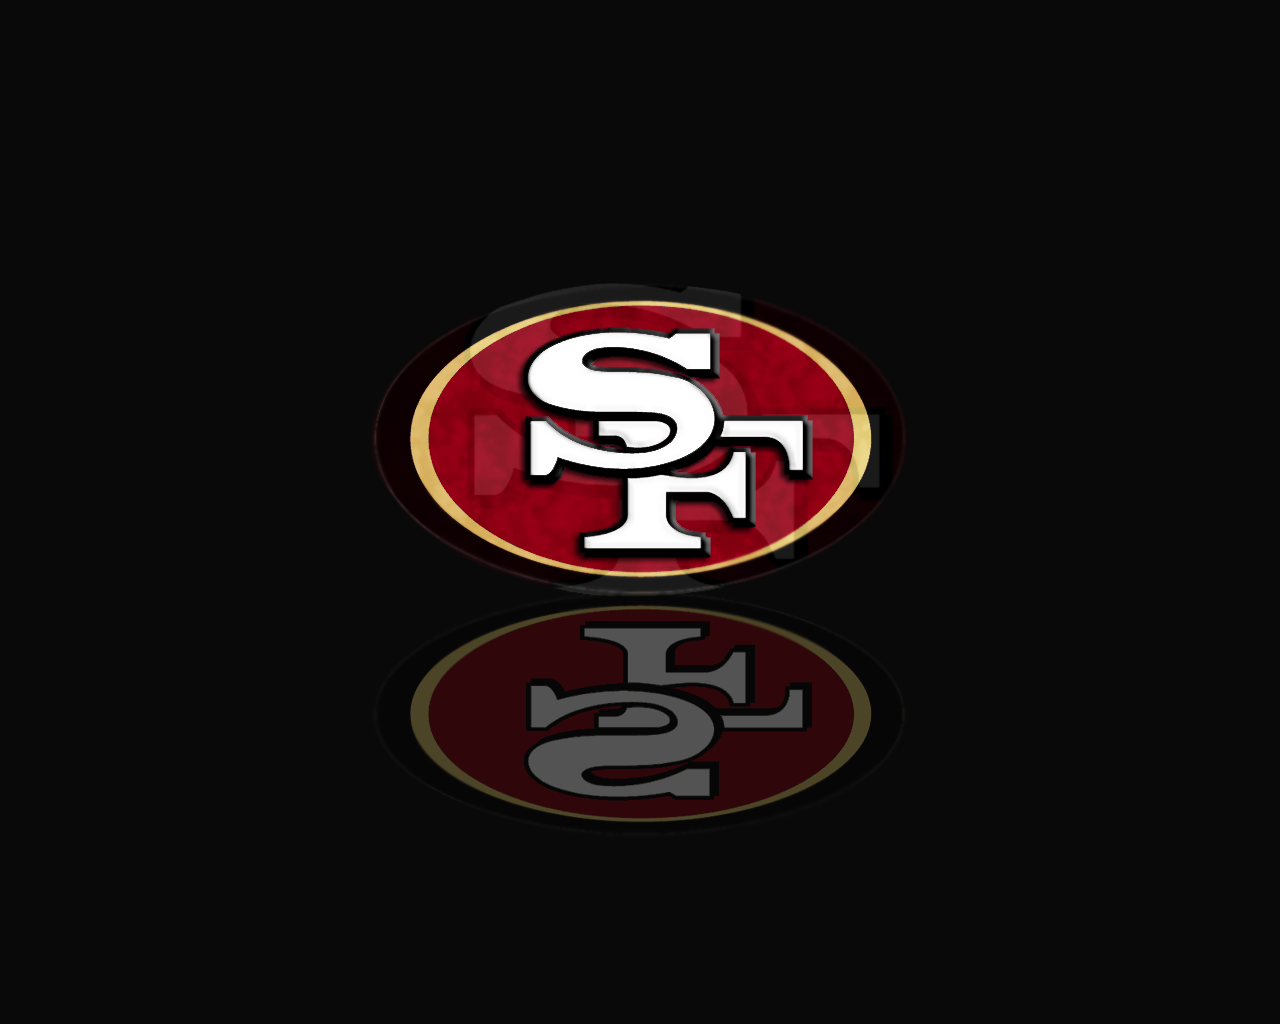 San Francisco 49ers Logo Wallpaper w Stripes by pasar3 1280 x 1280x1024